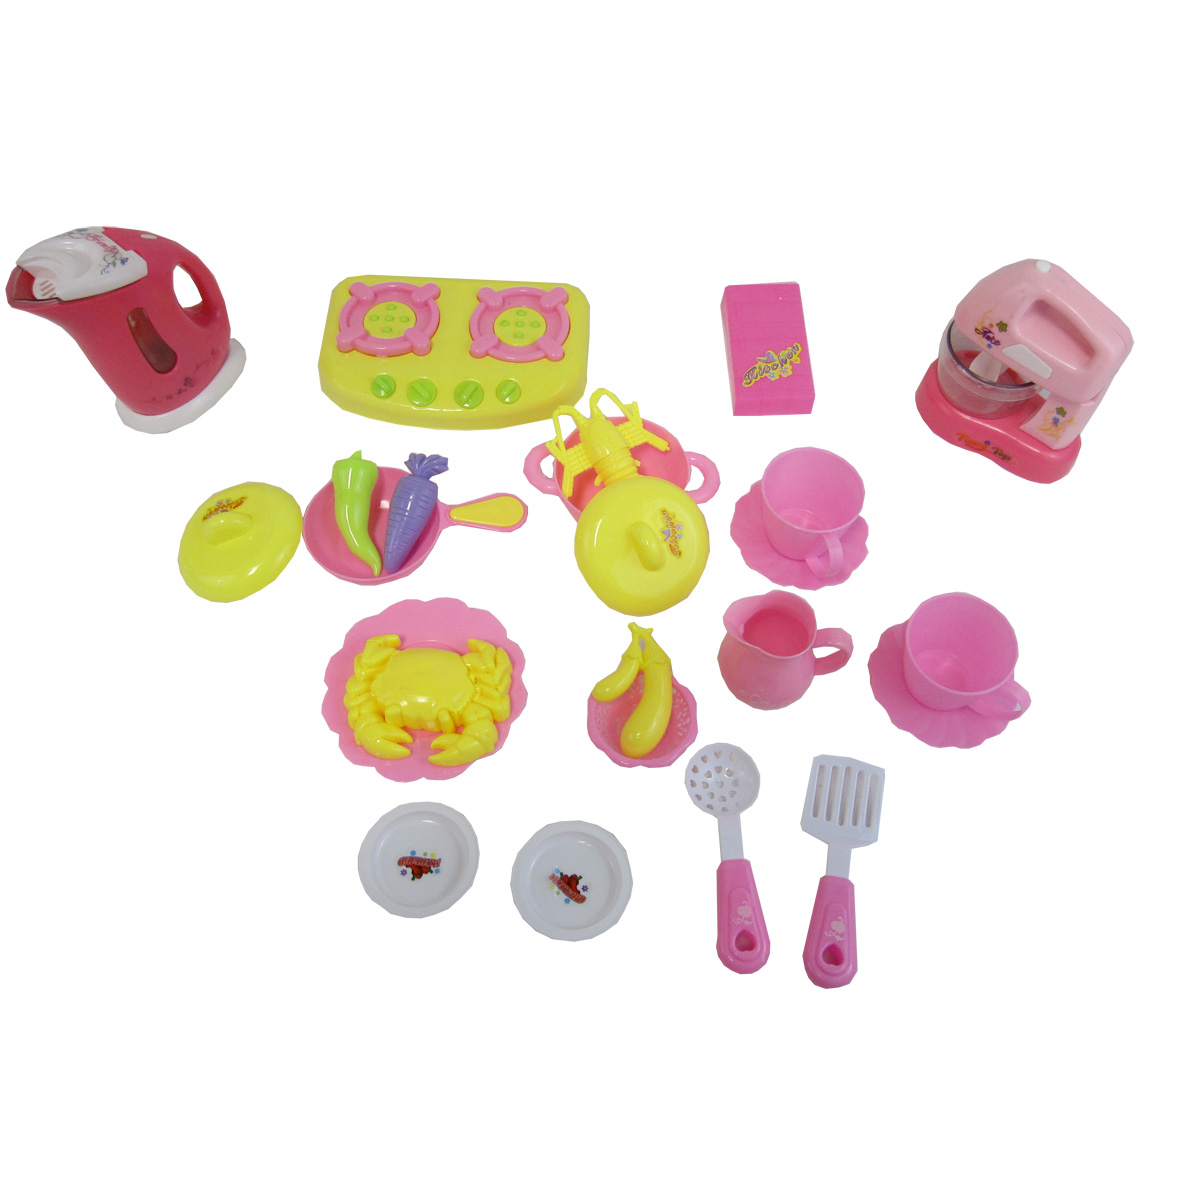 Diy Kids 21 Pcs Deluxe Play Set Commodity Kitchen Play Set With